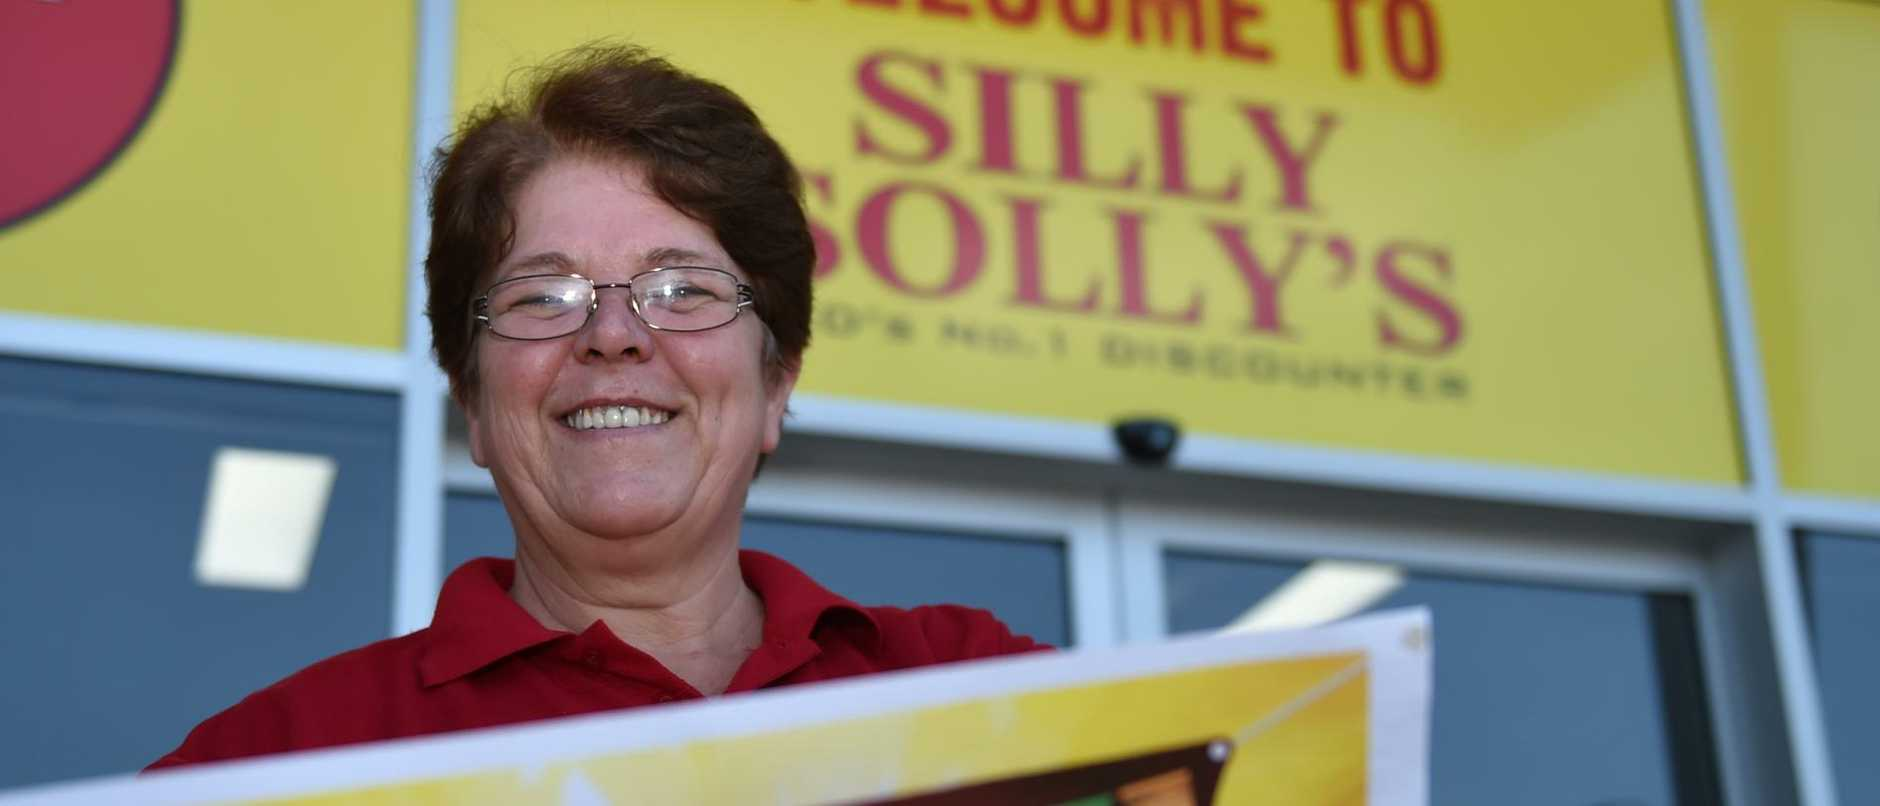 Discount chain Silly Solly's is planning a mega expansion across Queensland creating 200 new jobs. Here's where the likely new stores will go.